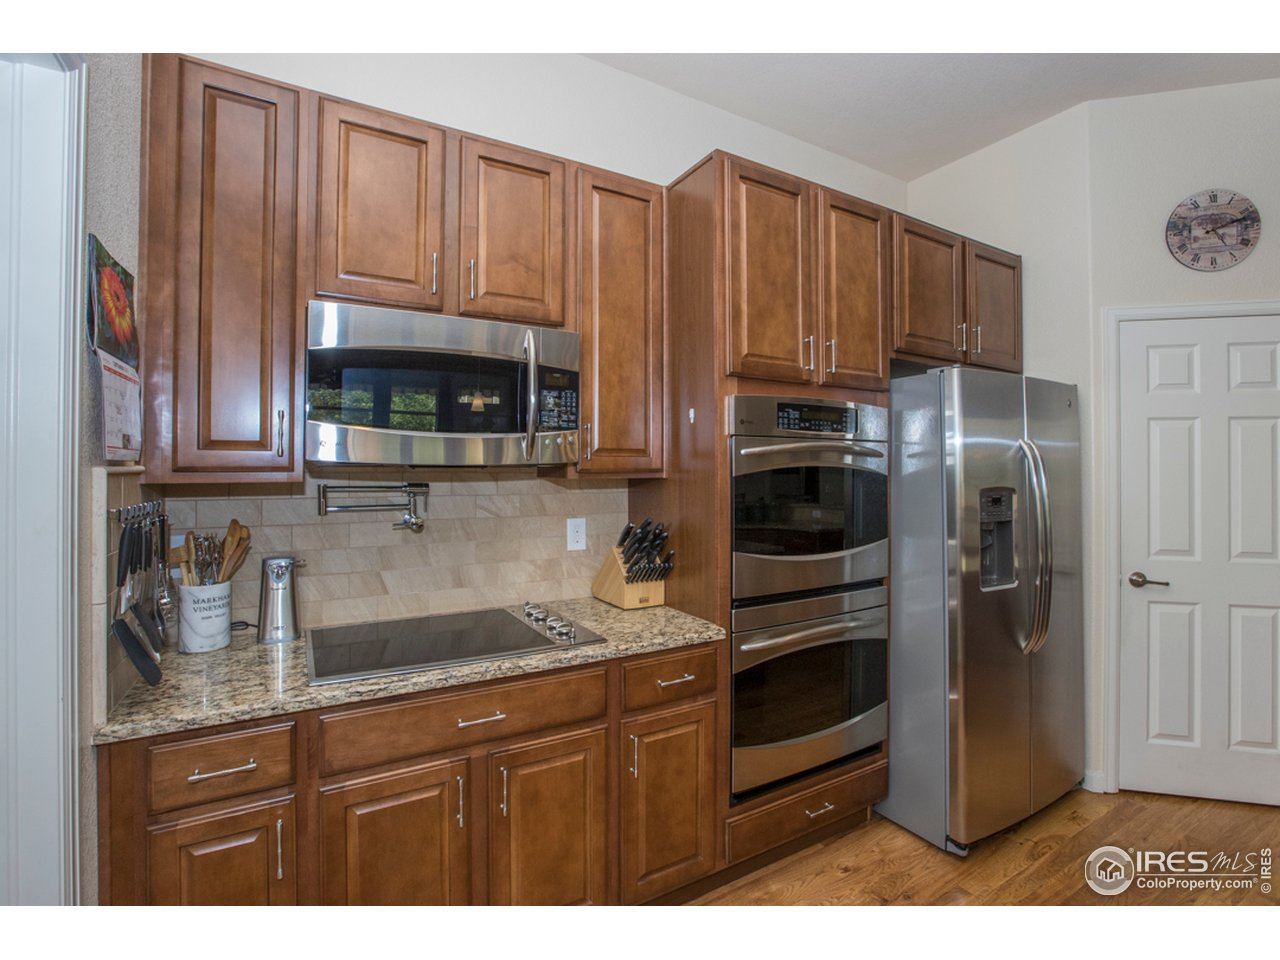 Pot filler, double ovens & refrigerator included